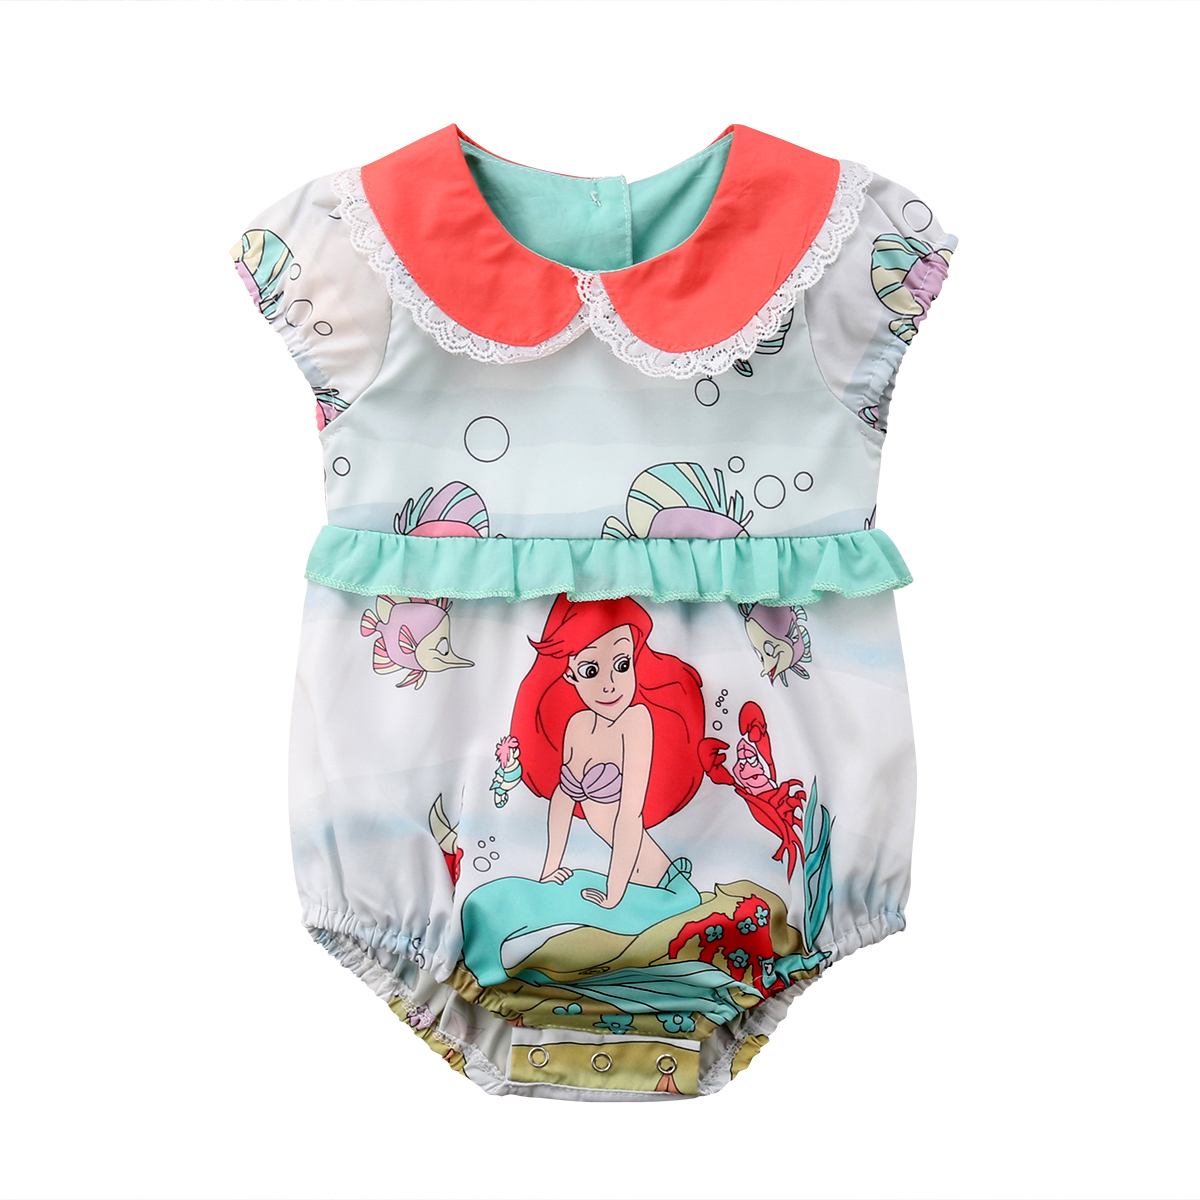 Cute Newborn Baby Girl Mermaid Clothes Short Sleeve Peter Pan Collar Lace Cartoon   Romper   Jumpsuit Outfits Sunsuit